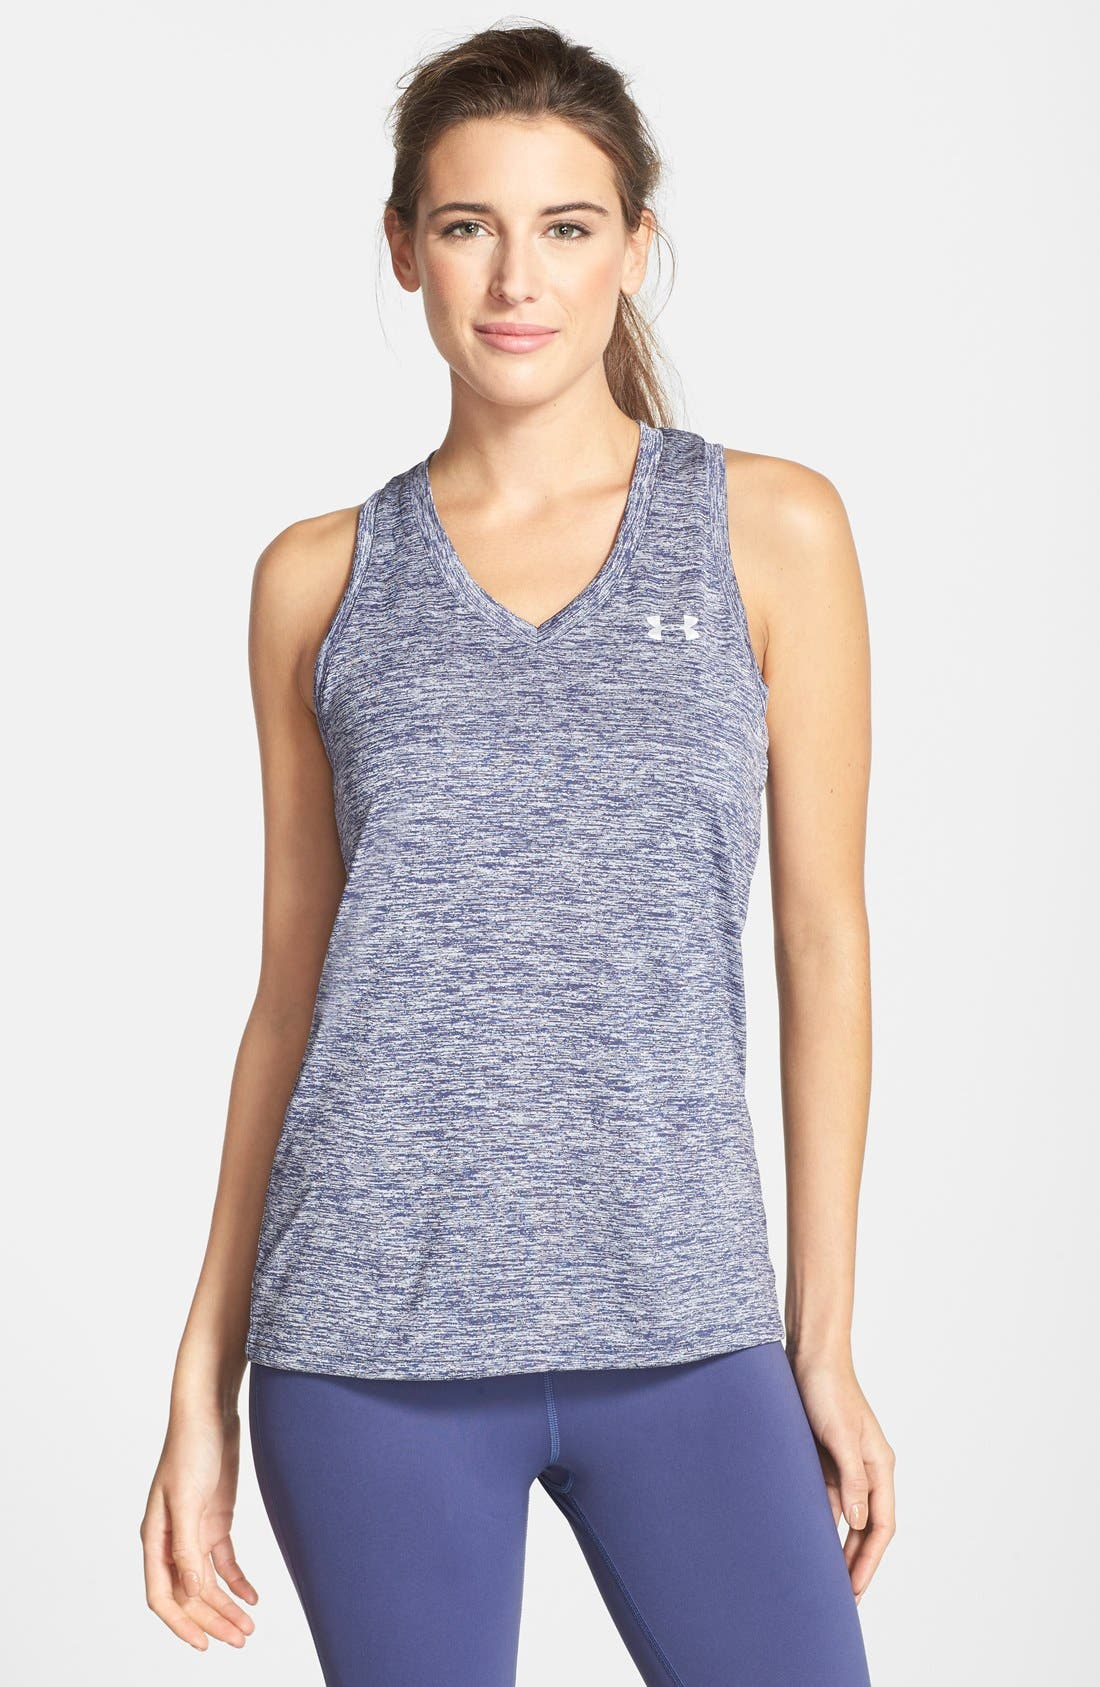 Alternate Image 1 Selected - Under Armour 'Twisted Tech' Tank